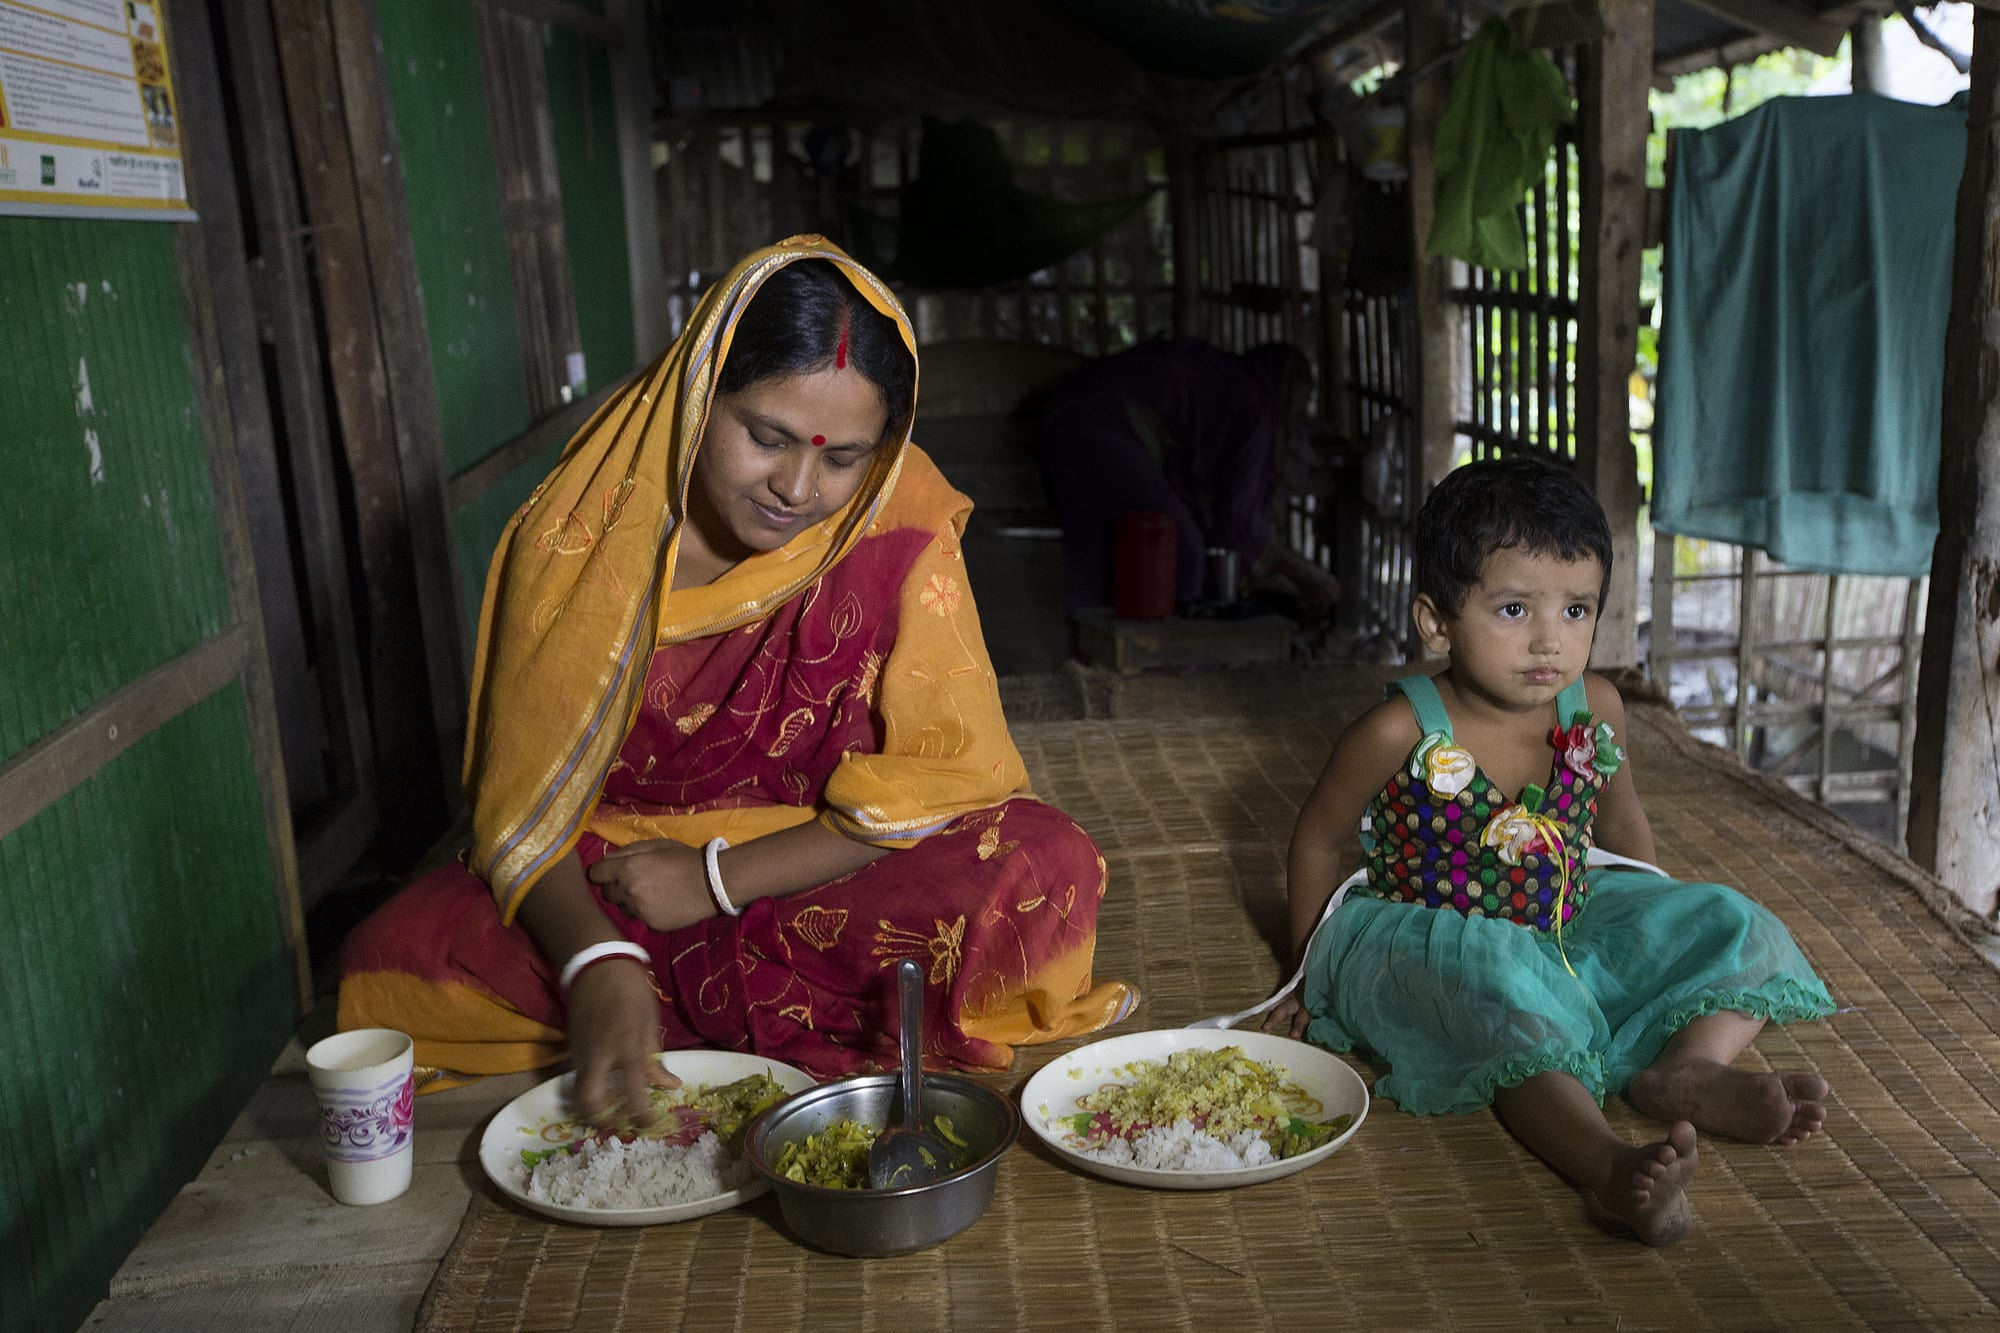 A woman and her daughter eat a healthy meal in Khulna, Bangladesh. Photo by Yousuf Tushar.